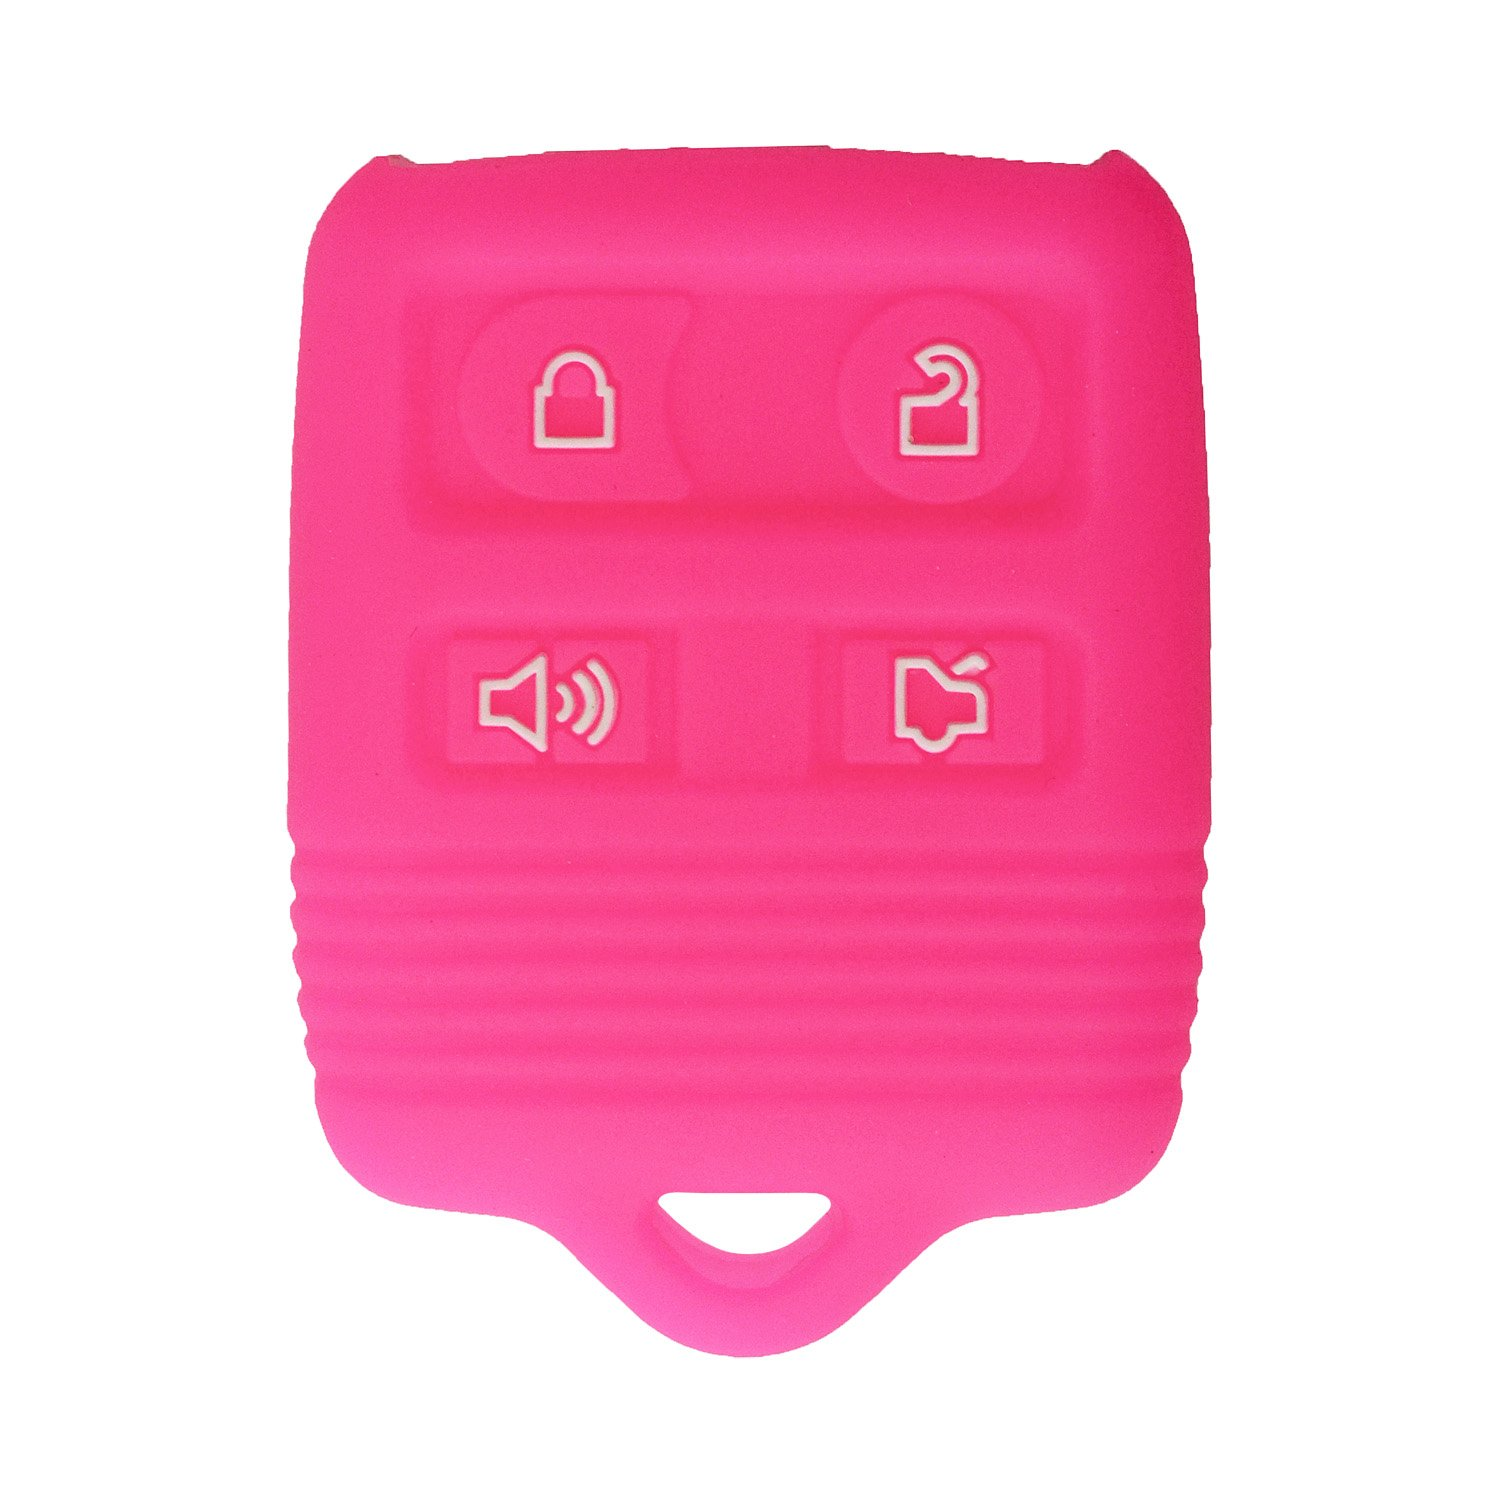 CWTWB1U345 Part #2S4T-15K601-AB with Keytag Return Service CWTWB1U331 qualitykeylessplus Protective Rubber Silicone Cover for 4 Button Ford Keyless Entry Remote Fobs FCC ID